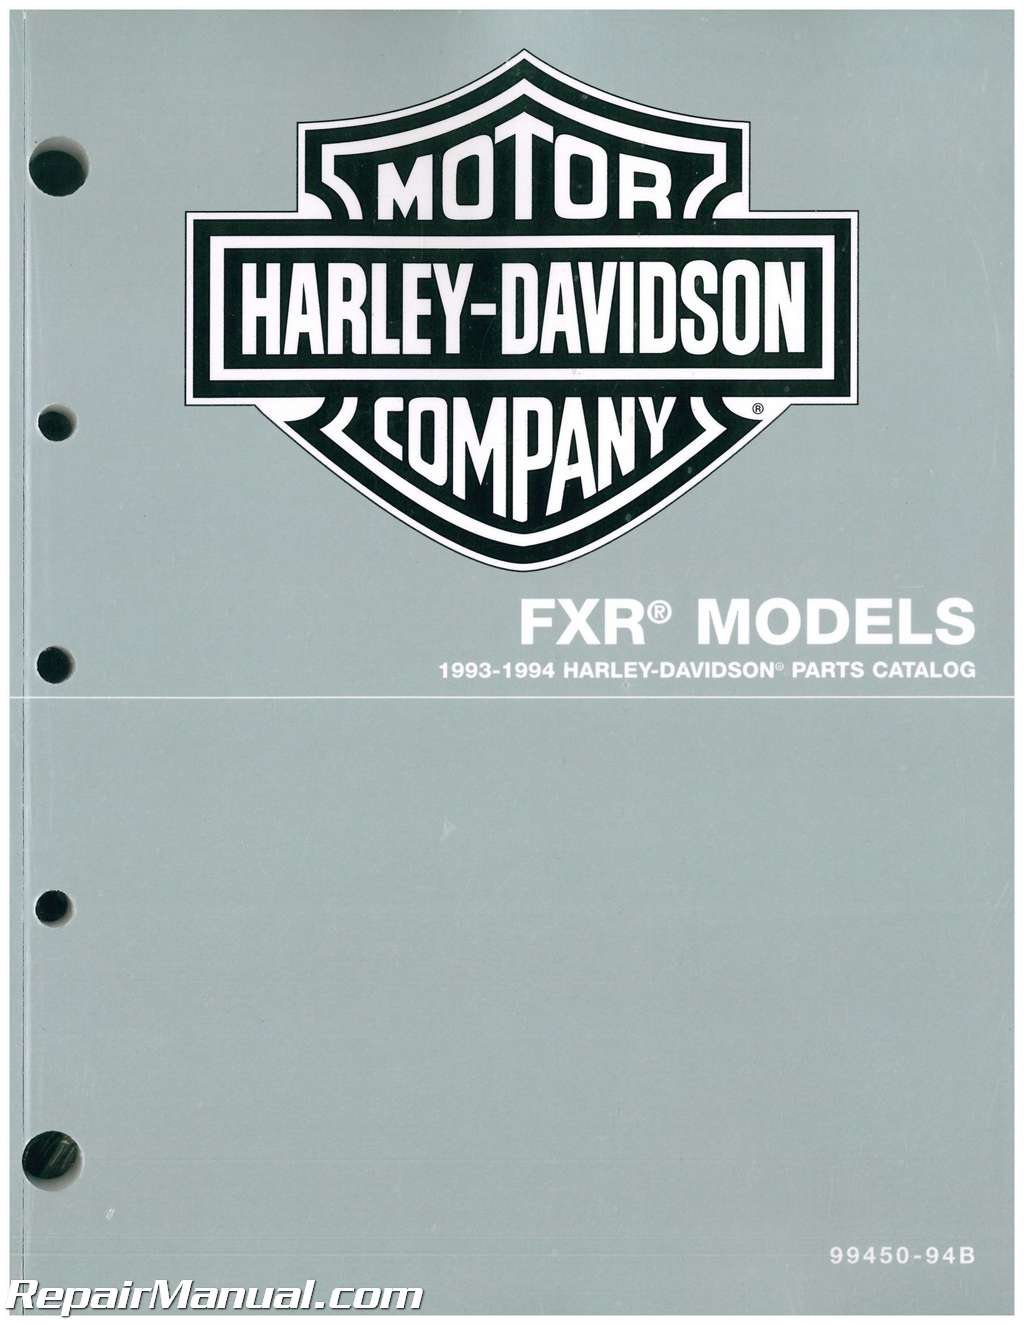 1993 Harley Softail Wiring Diagram Will Be A Thing Davidson 1994 Parts U2022 For Free Heritage